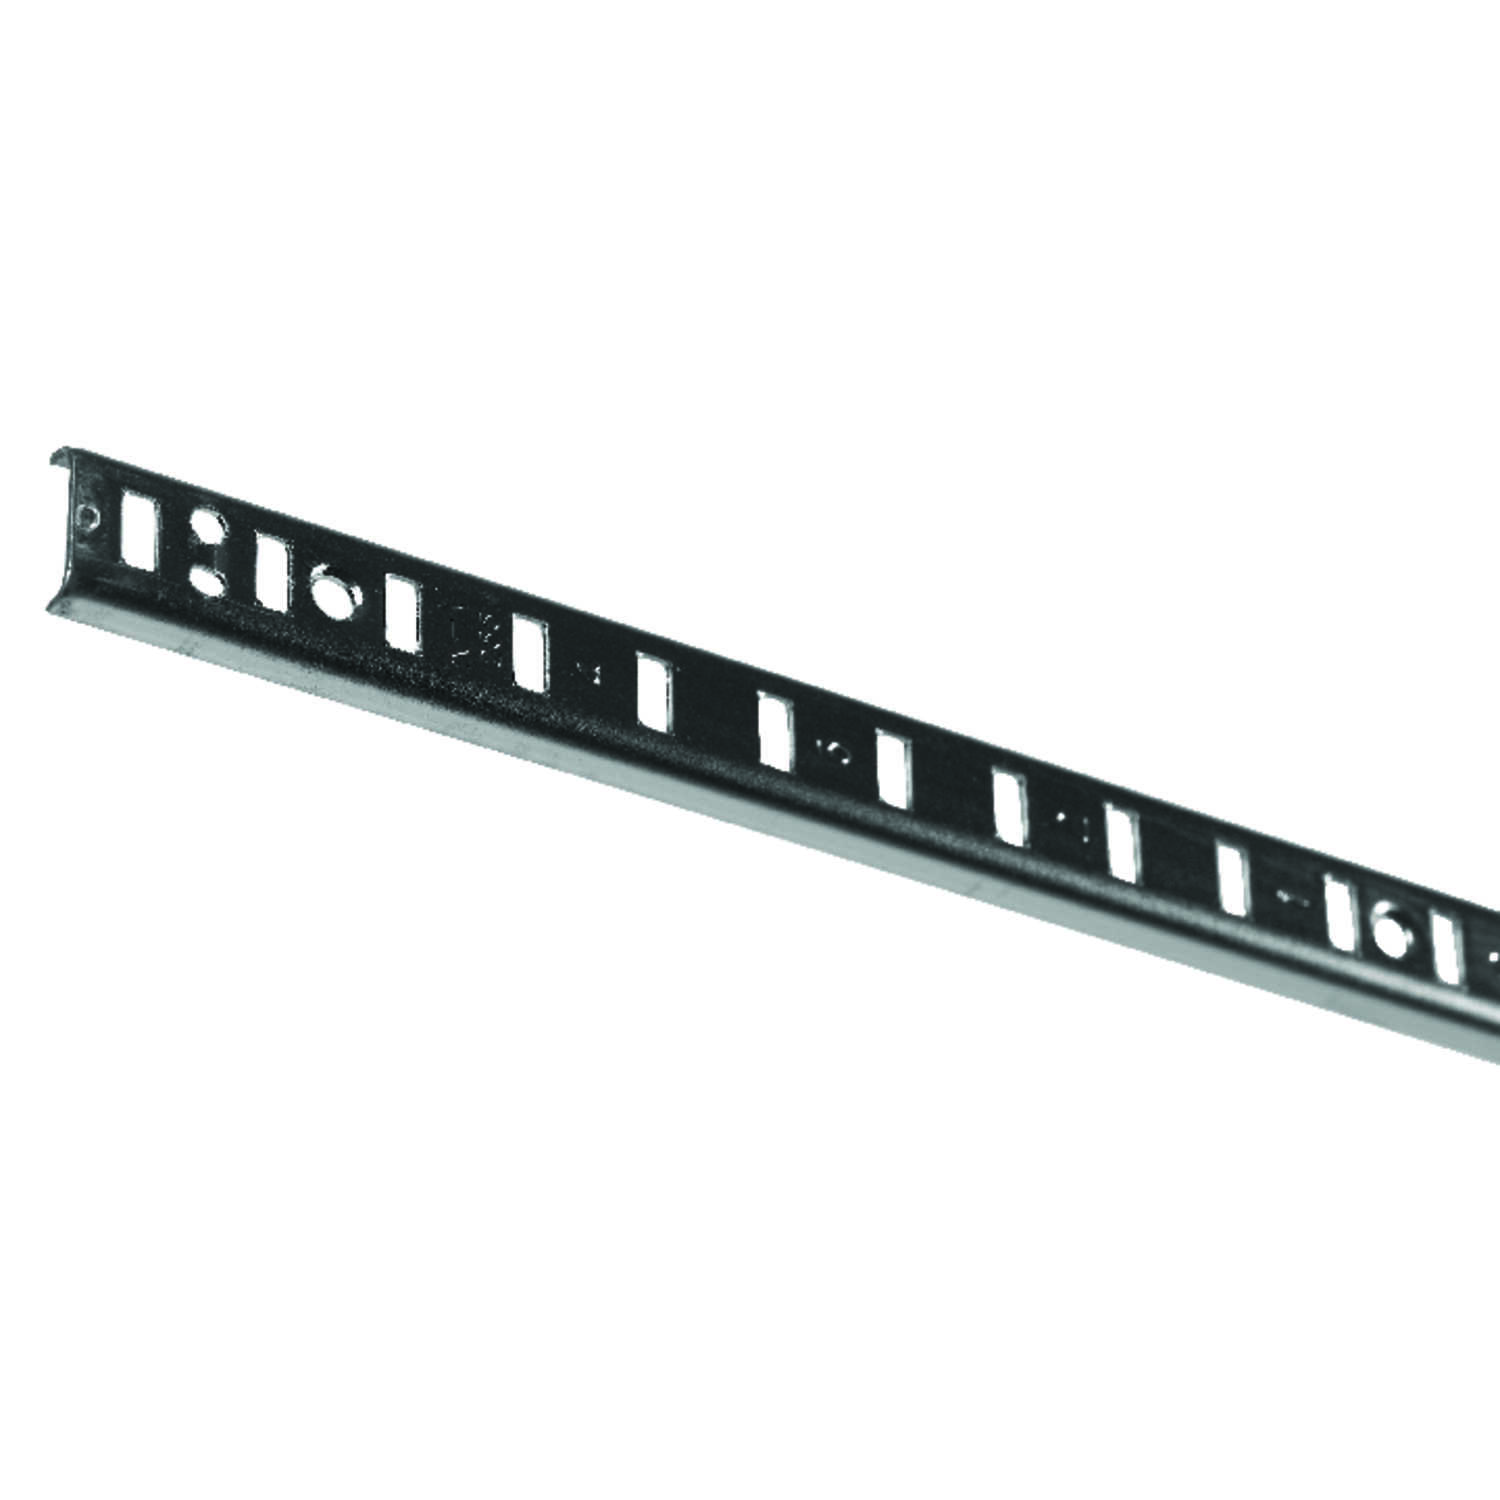 Knape & Vogt  Steel  Heavy Duty Shelf  Pilaster  0.25 in. H x 72 in. L 250 lb.